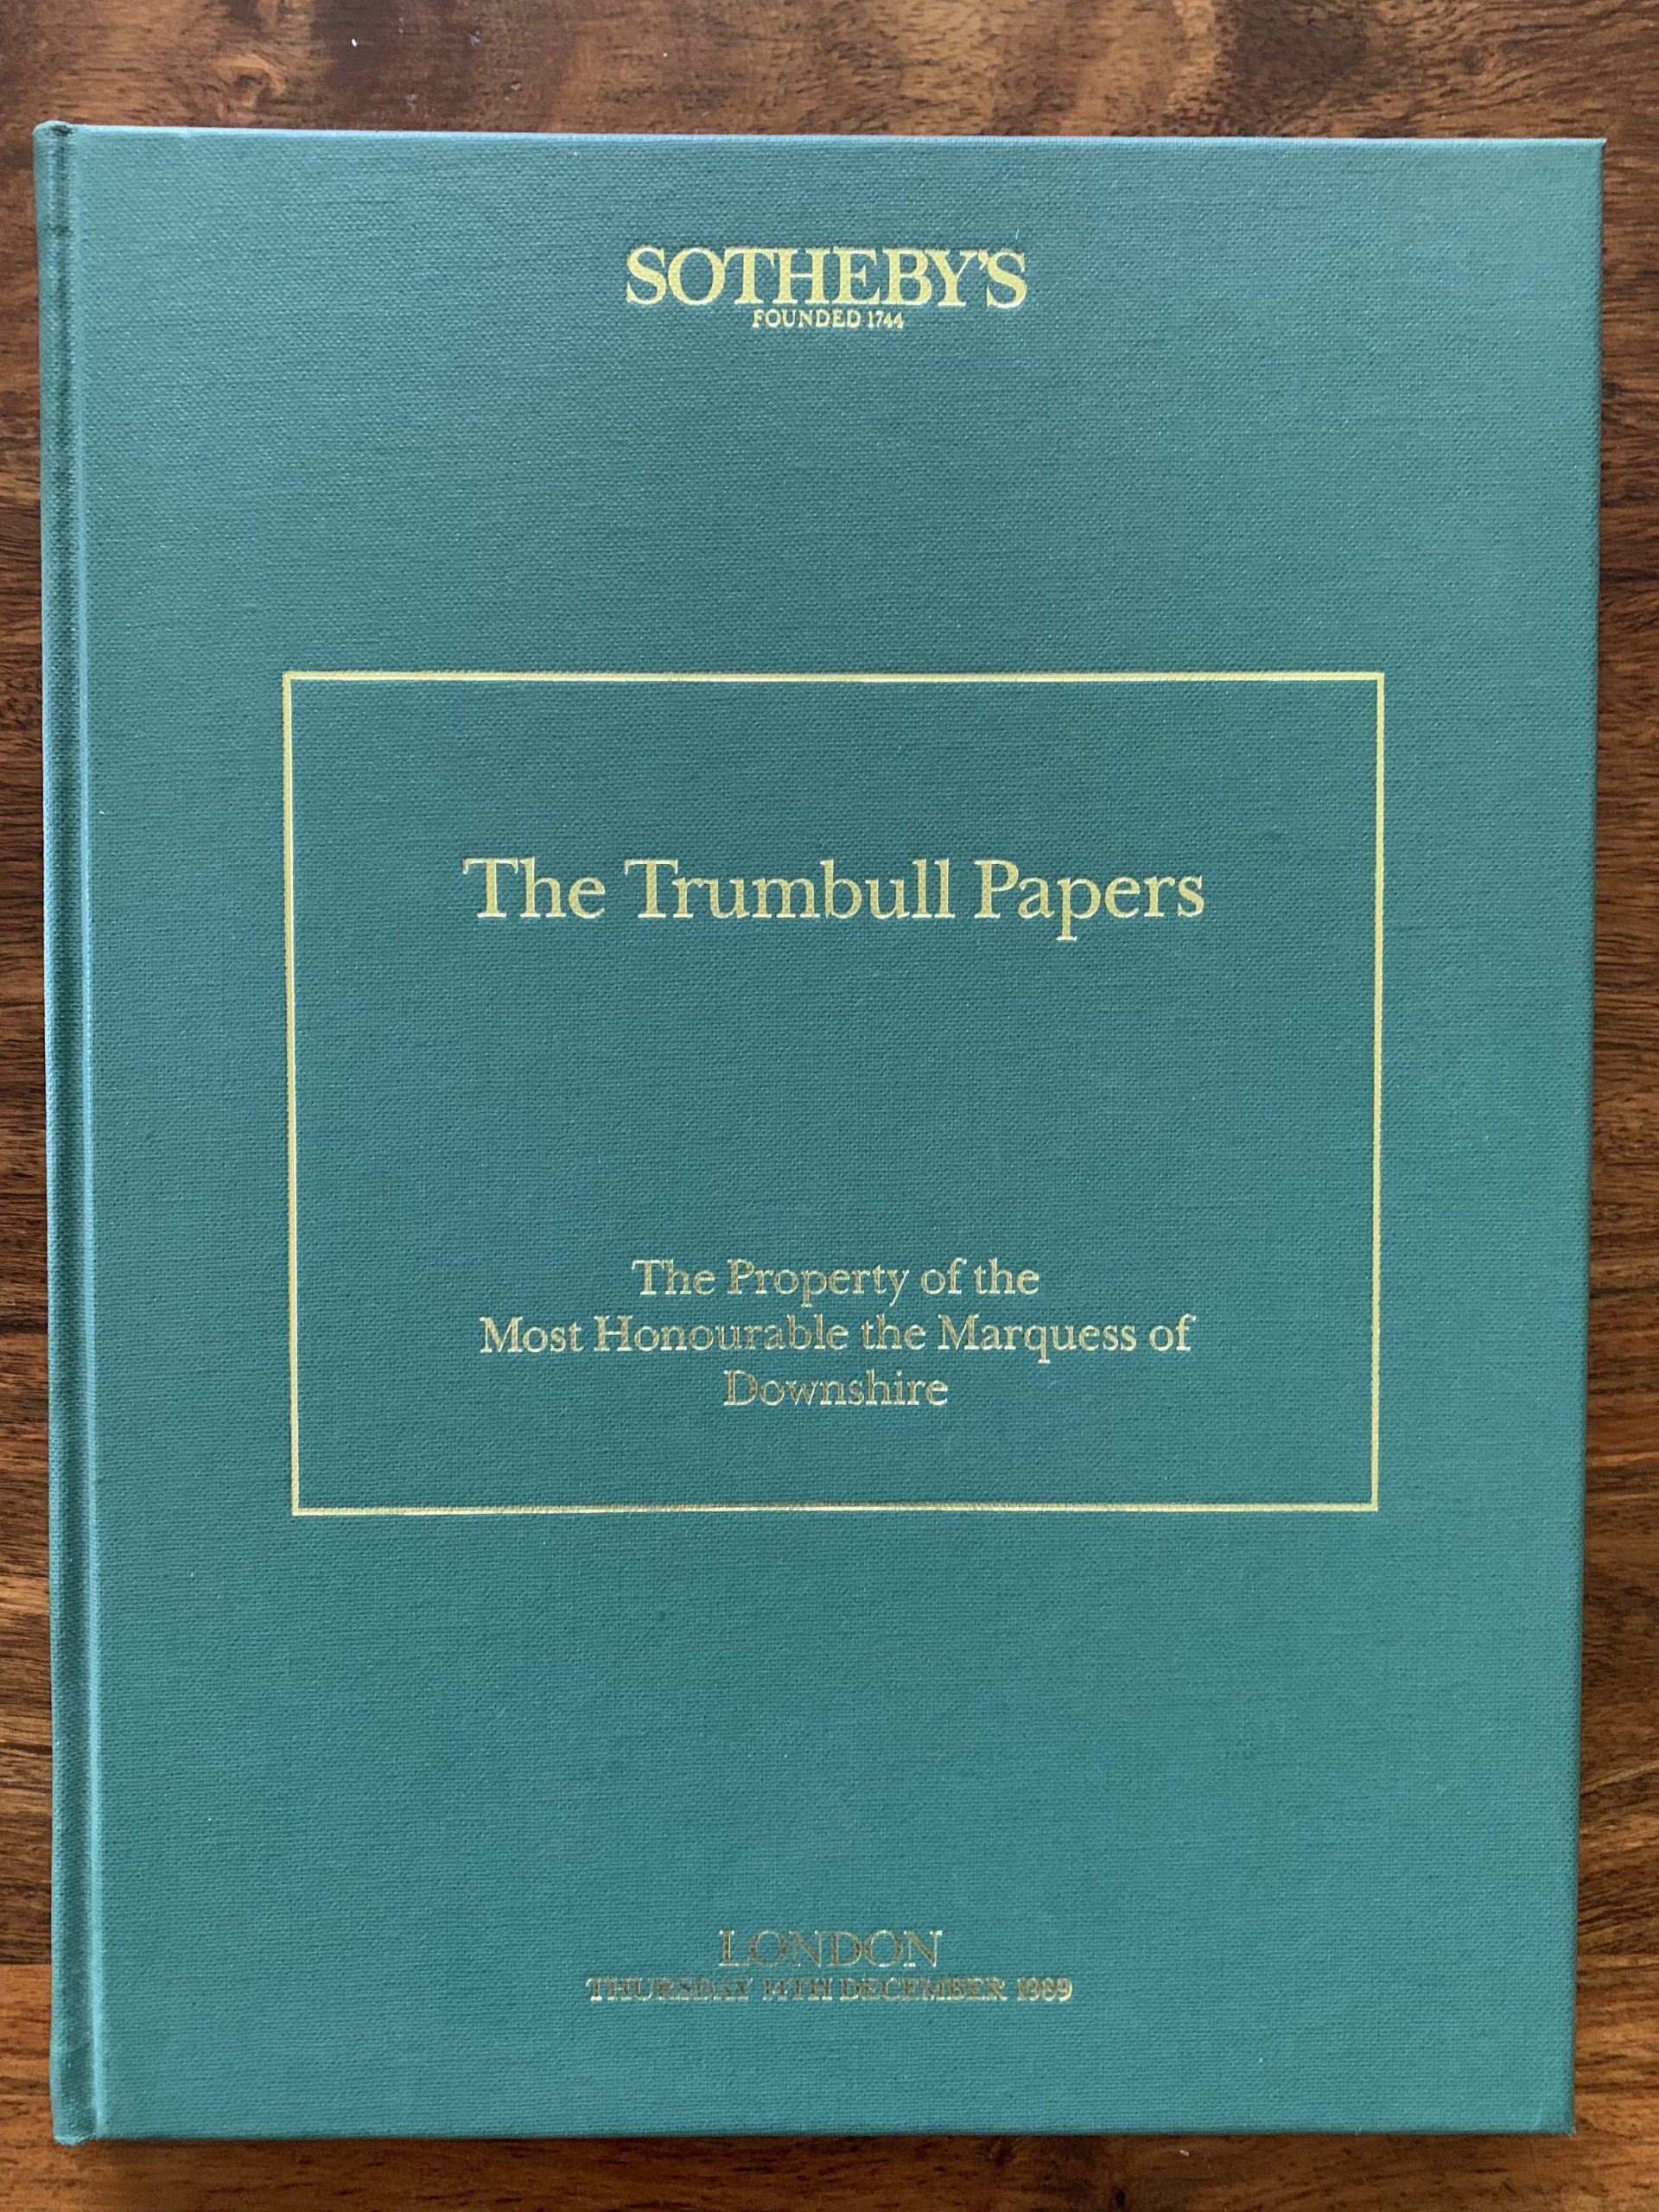 Sotheby's. The Trumbull Papers.